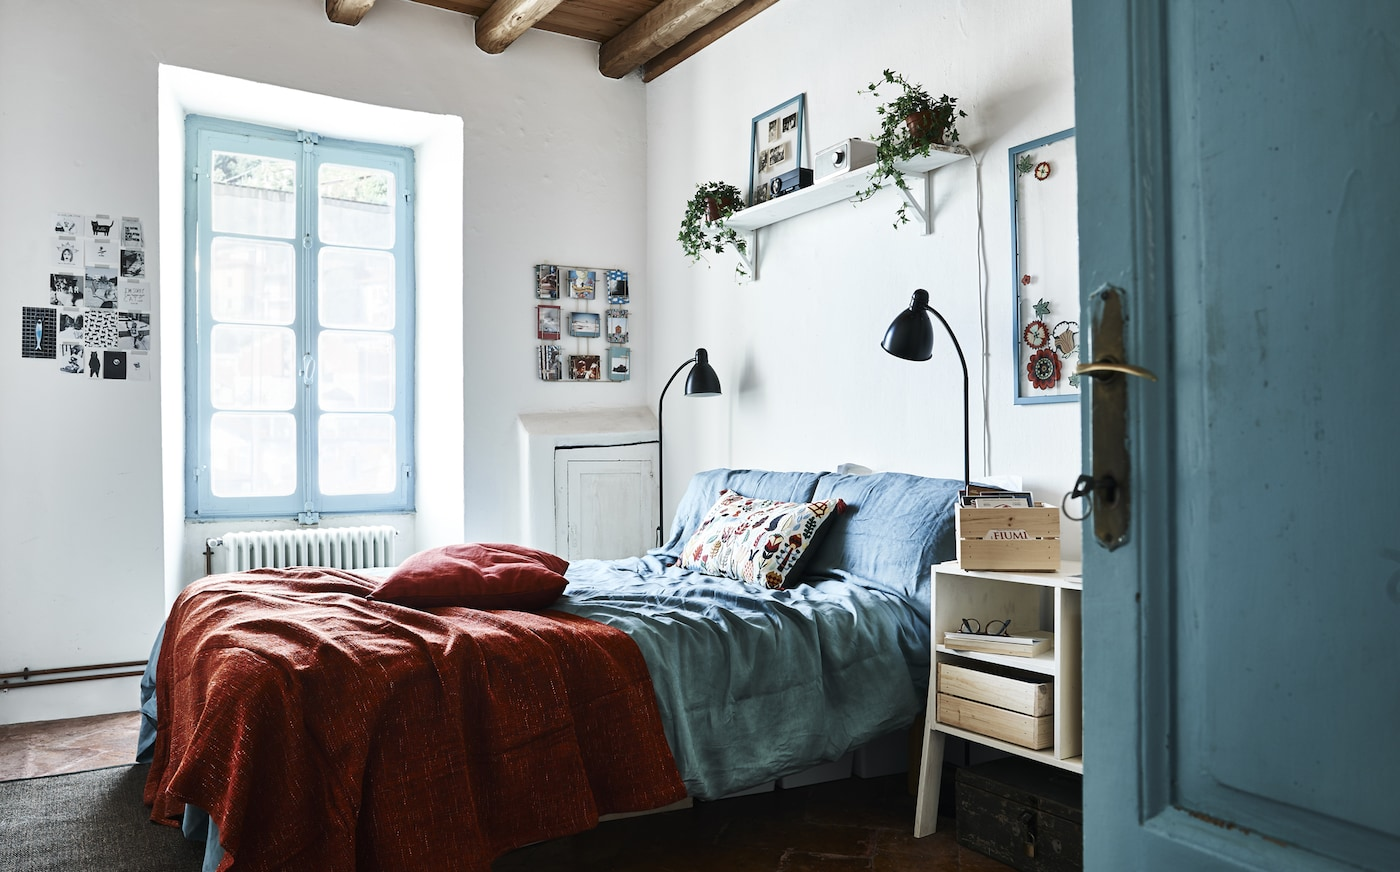 A blue and white themed bedroom.